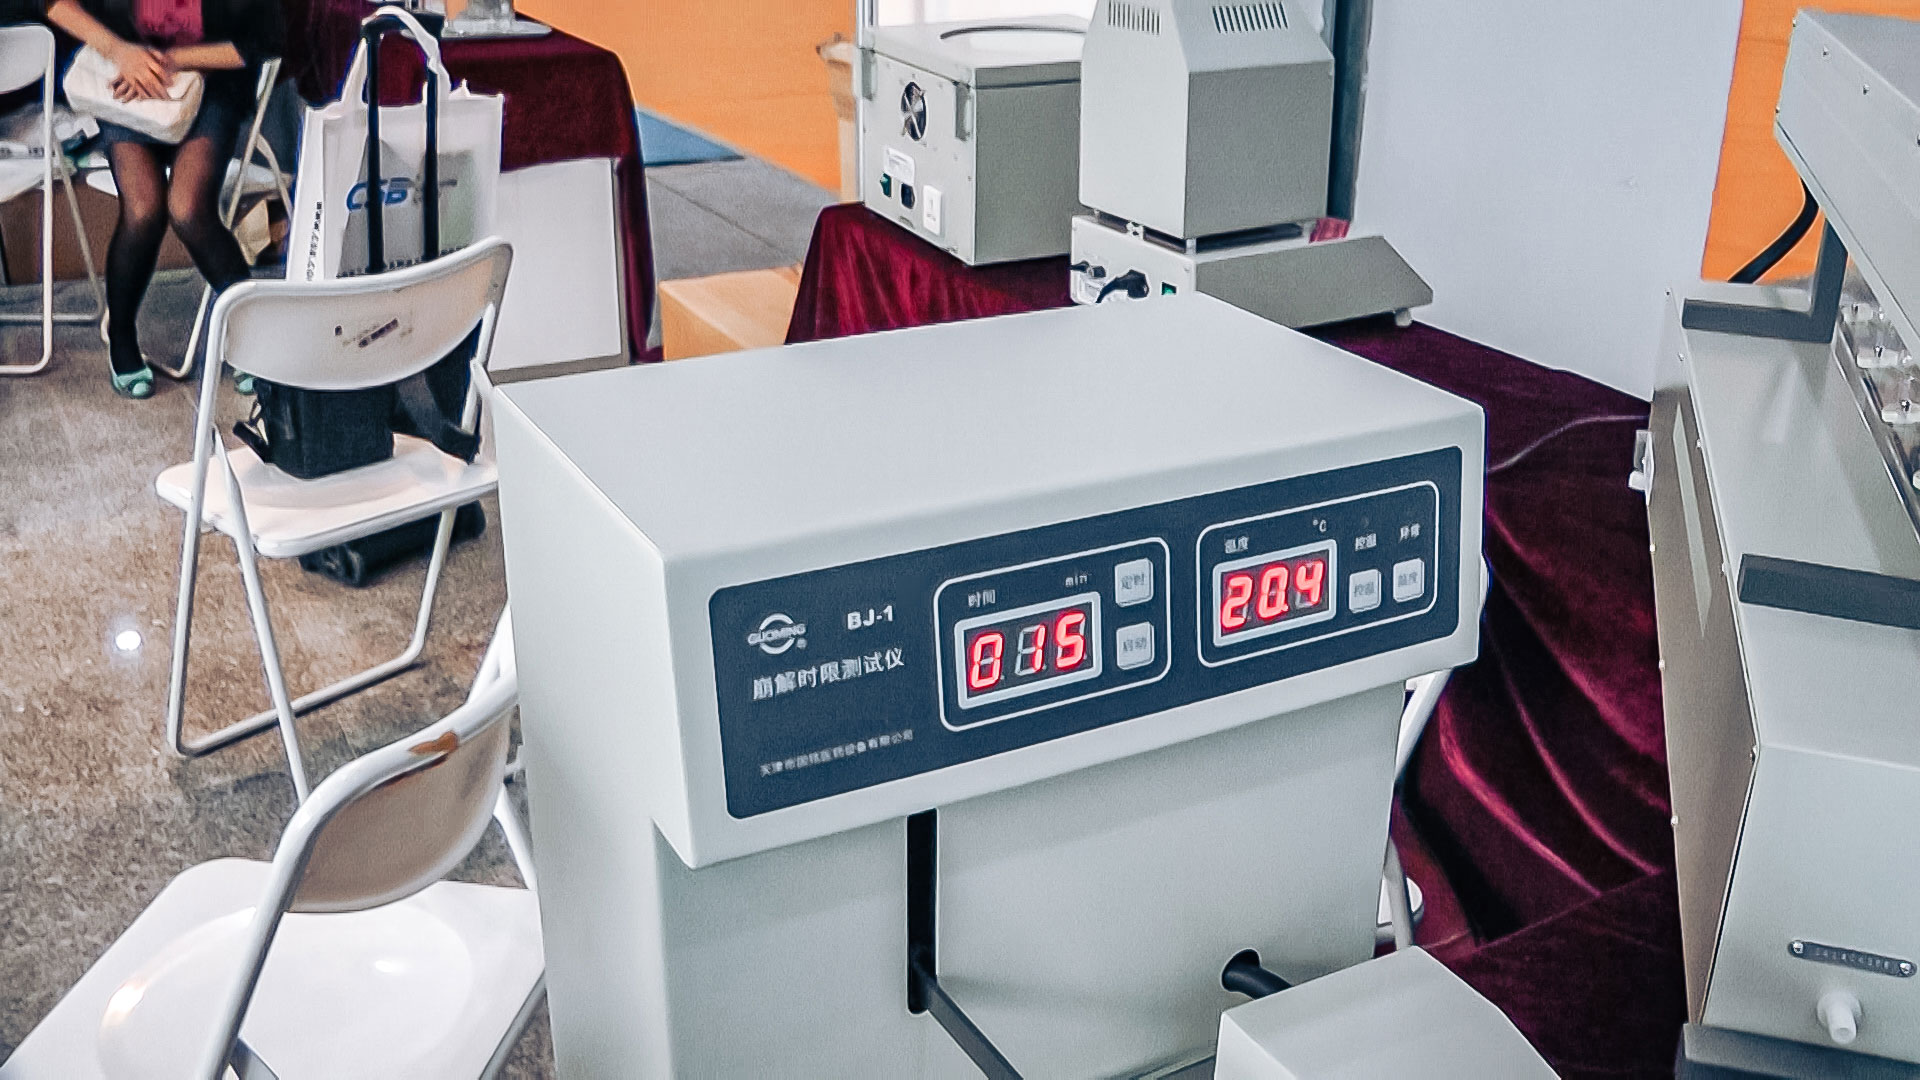 Automatic tablet quality testing equipment for laboratory decomposition in pharmaceutical production